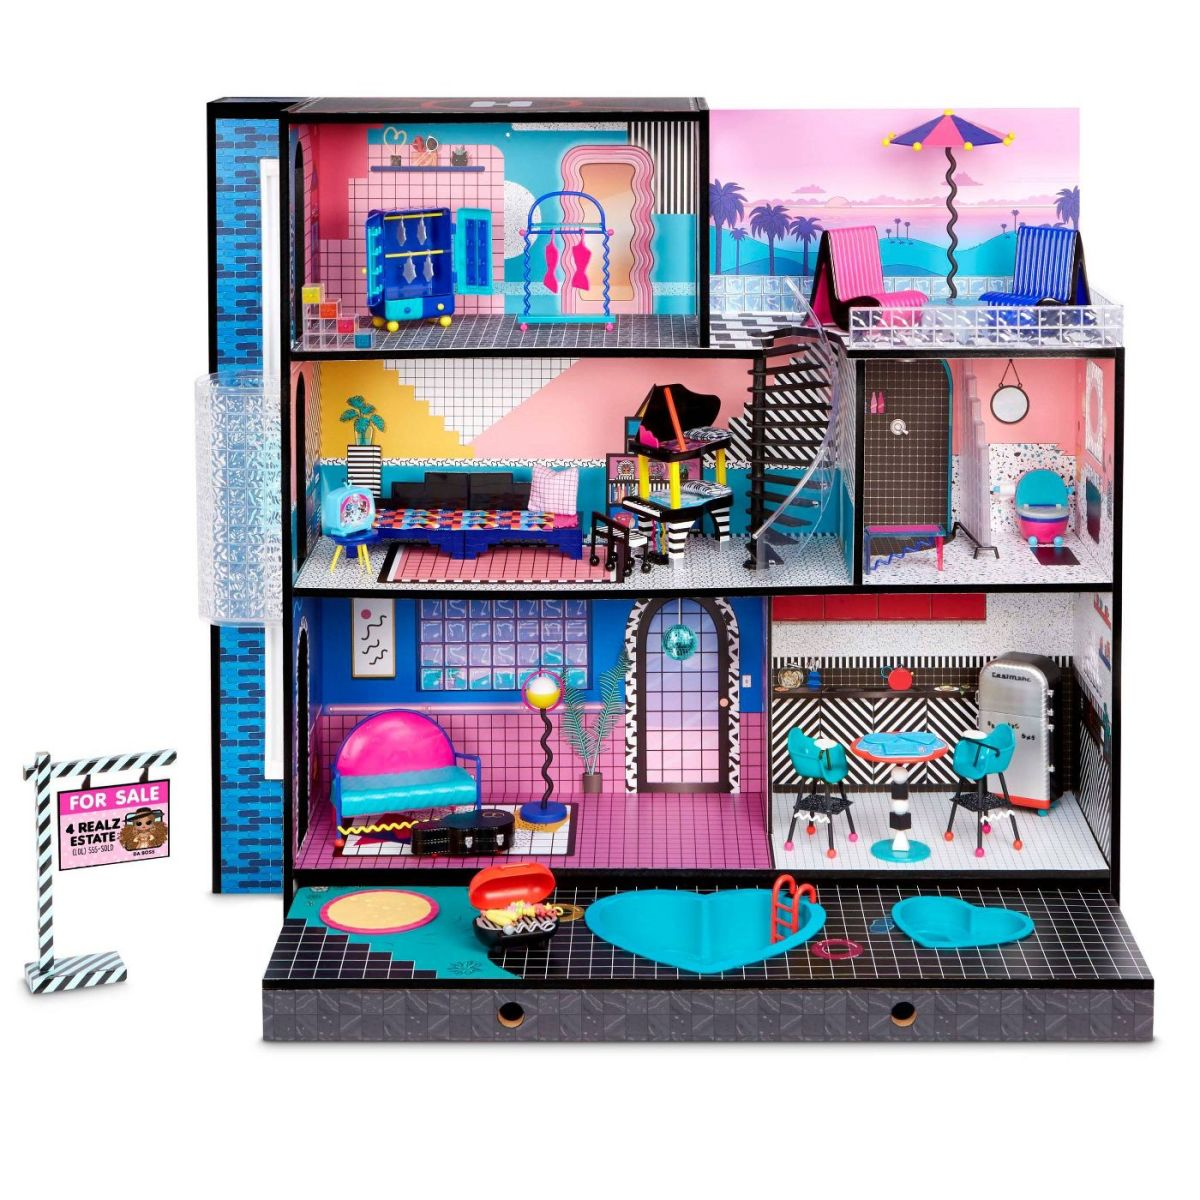 LOL Surprise Doll House Hottest Toys for the Holidays